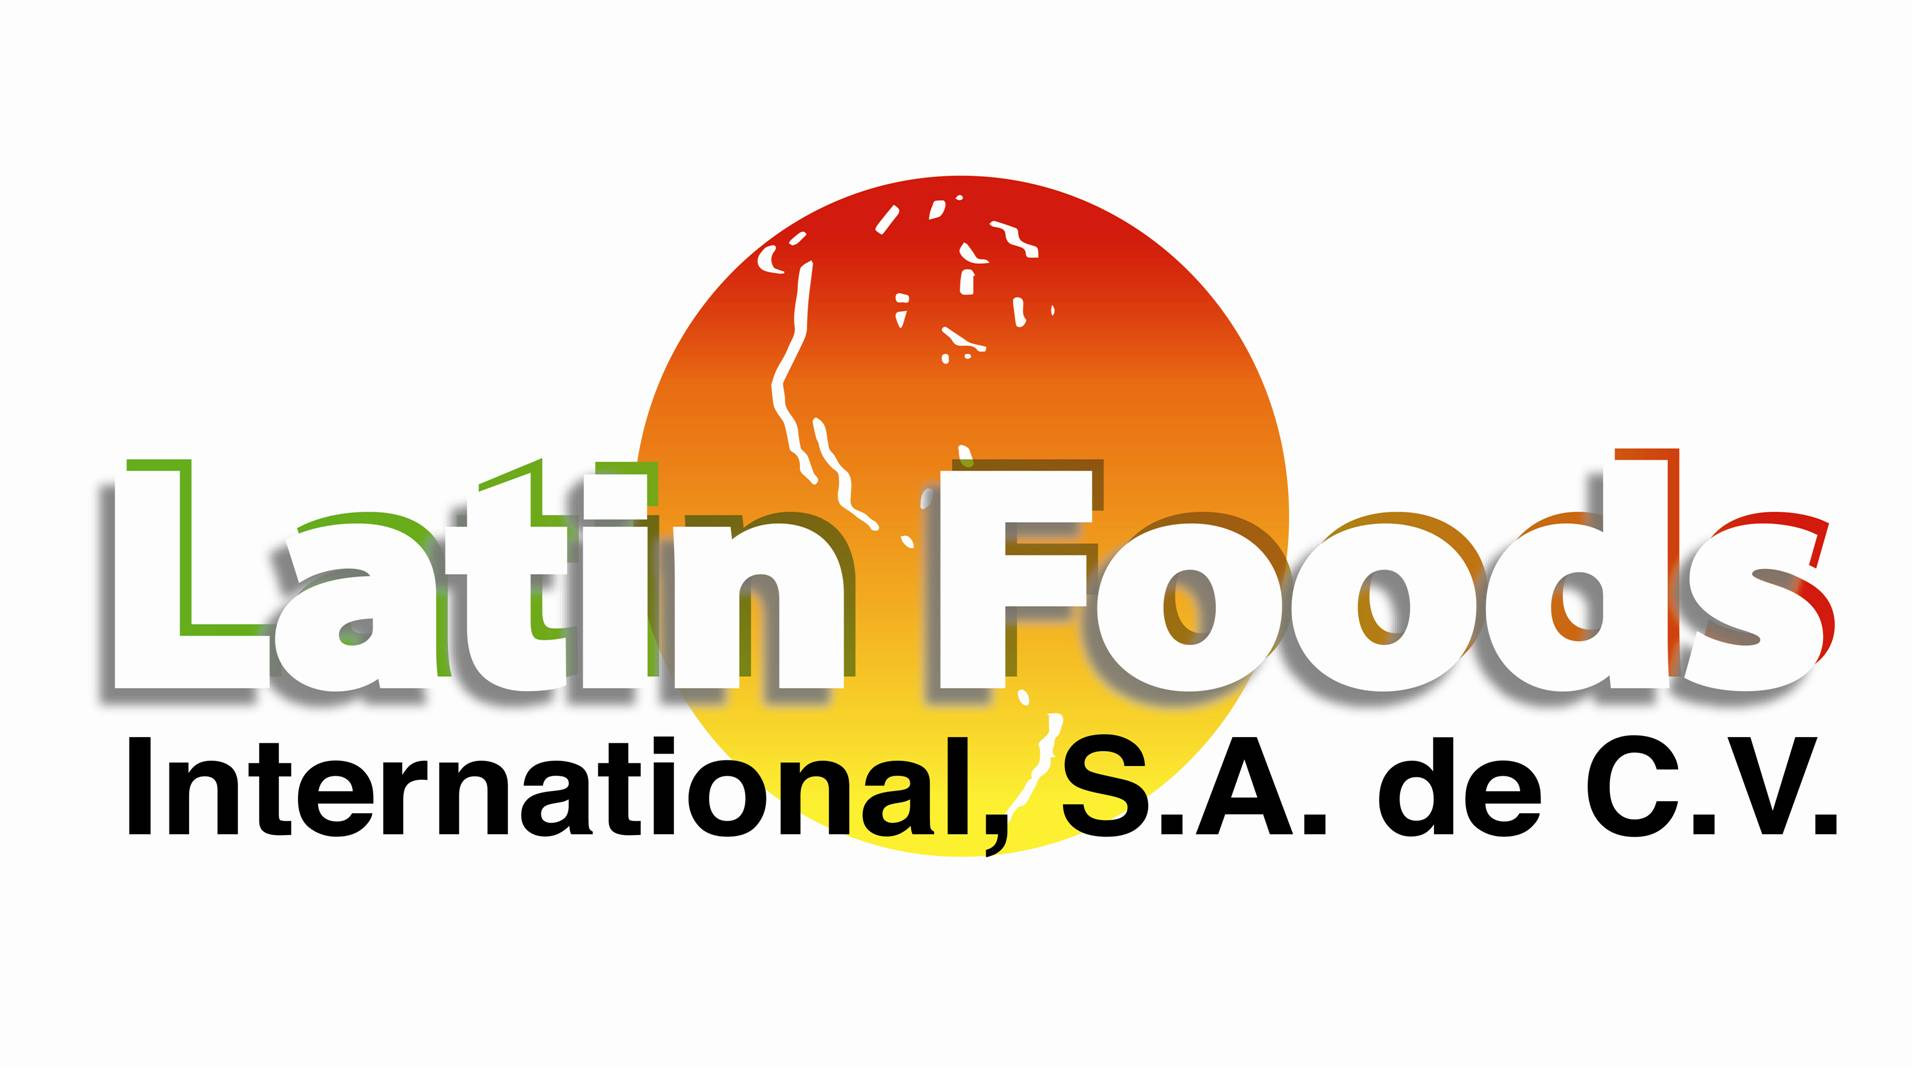 Latin Foods International S.A.de C.V